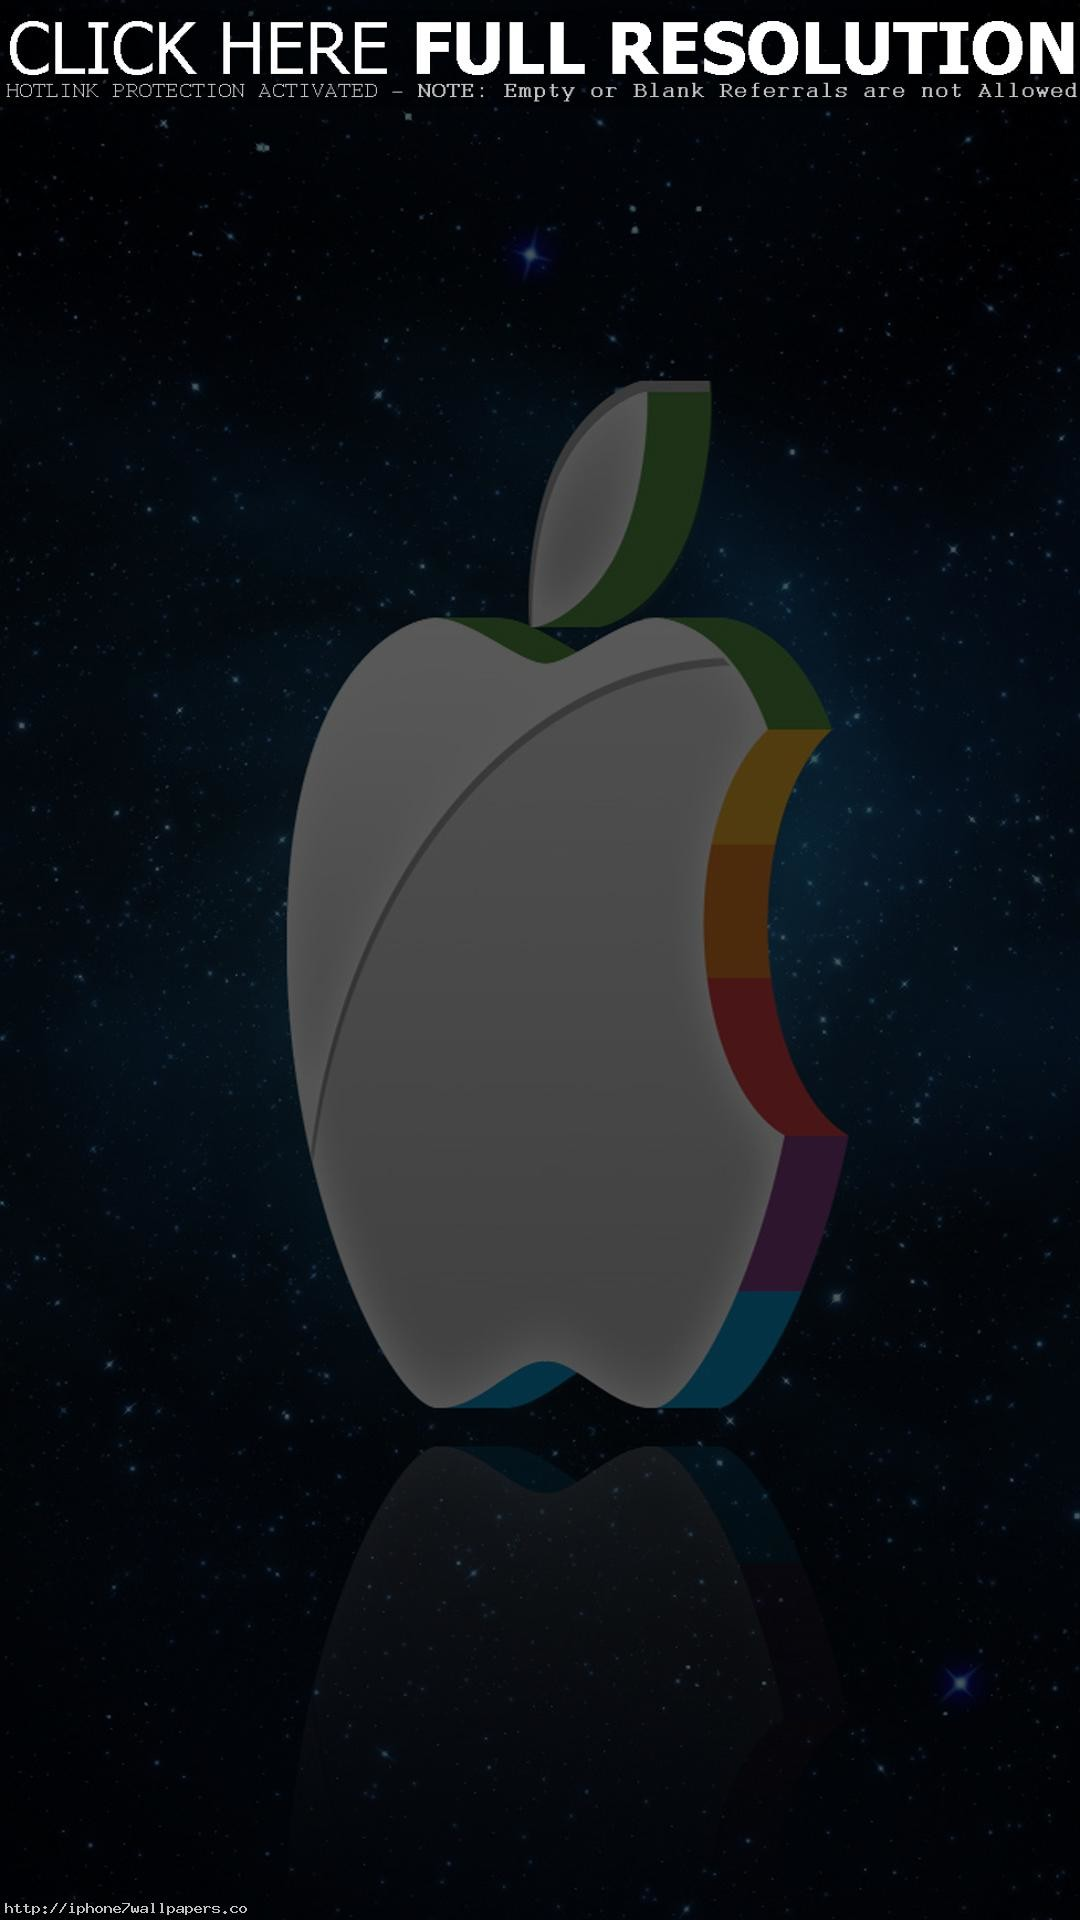 1080x1920 ... 3d apple logo in e android wallpaper android hd wallpapers ...